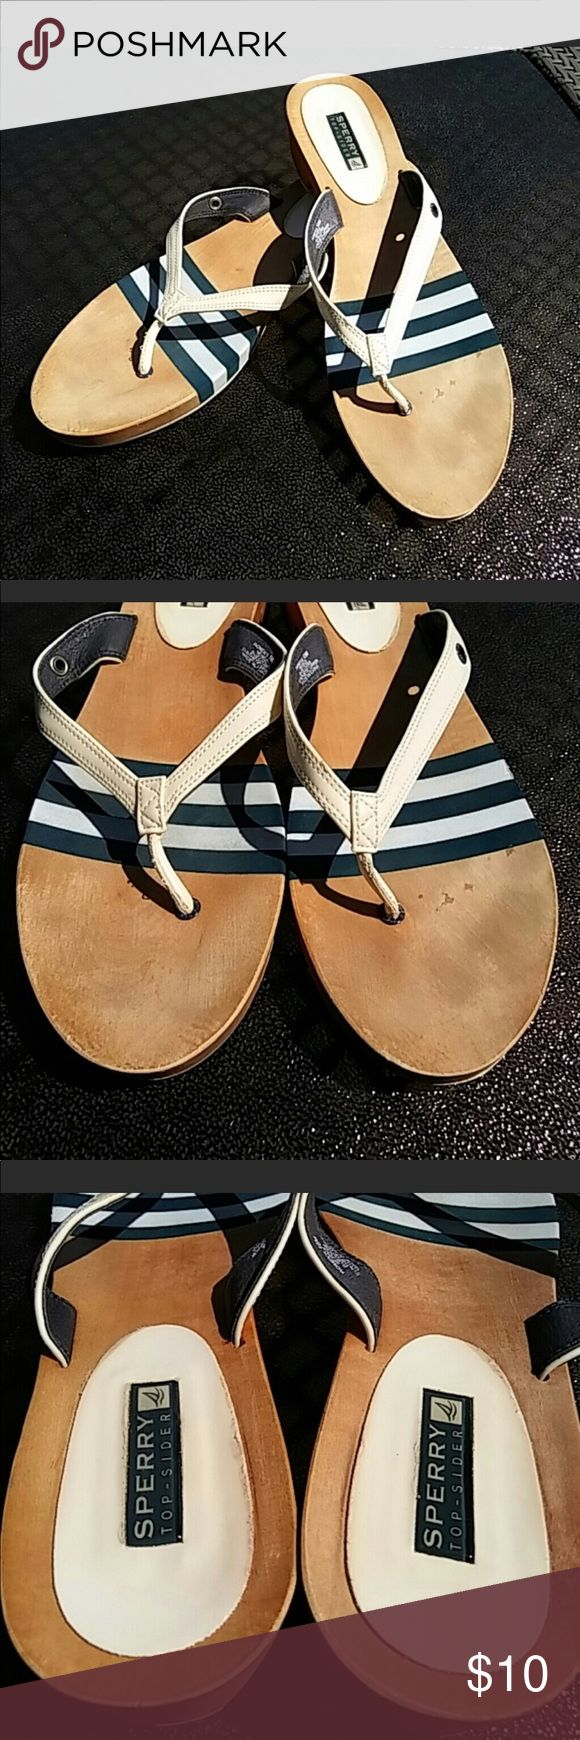 Sperry Slippers Thong Type Reposhing😂 Got too excited to have it, did not looked at the size. Wooden slippers with navy blue and white accent. Sperry Shoes Slippers